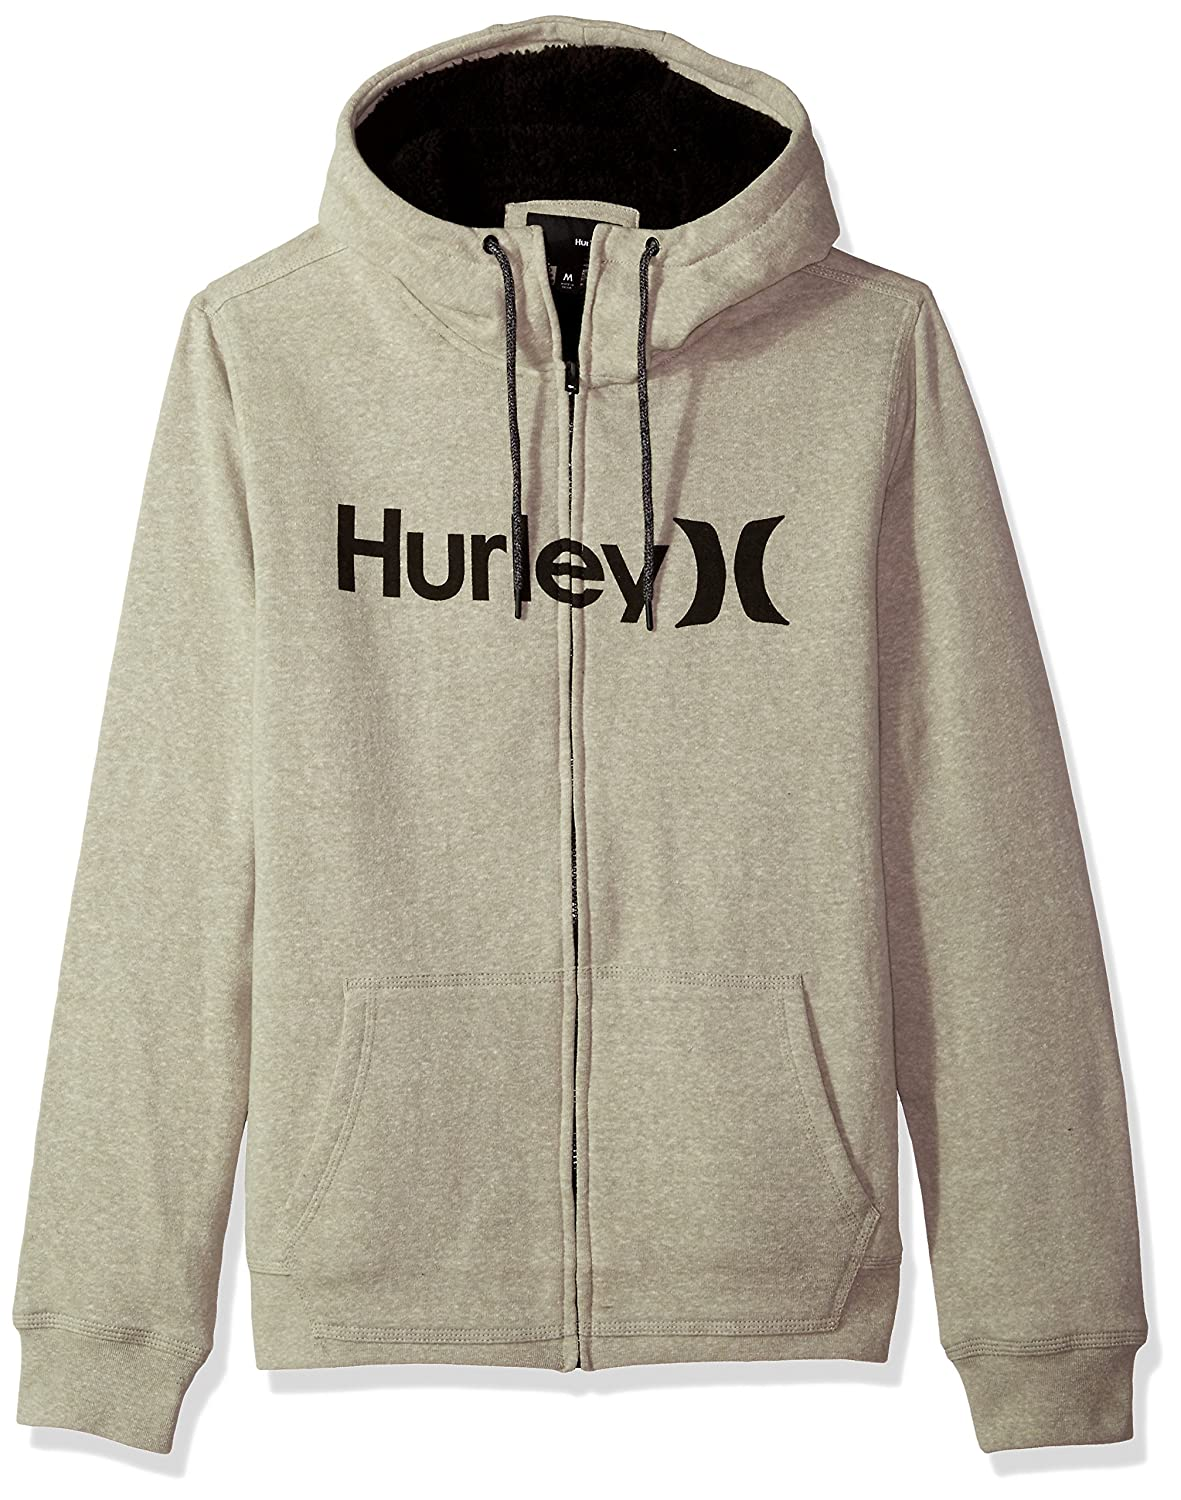 Hurley Men's Long Sleeve Sherpa Lined Zip Up Hoodie MFT0007590